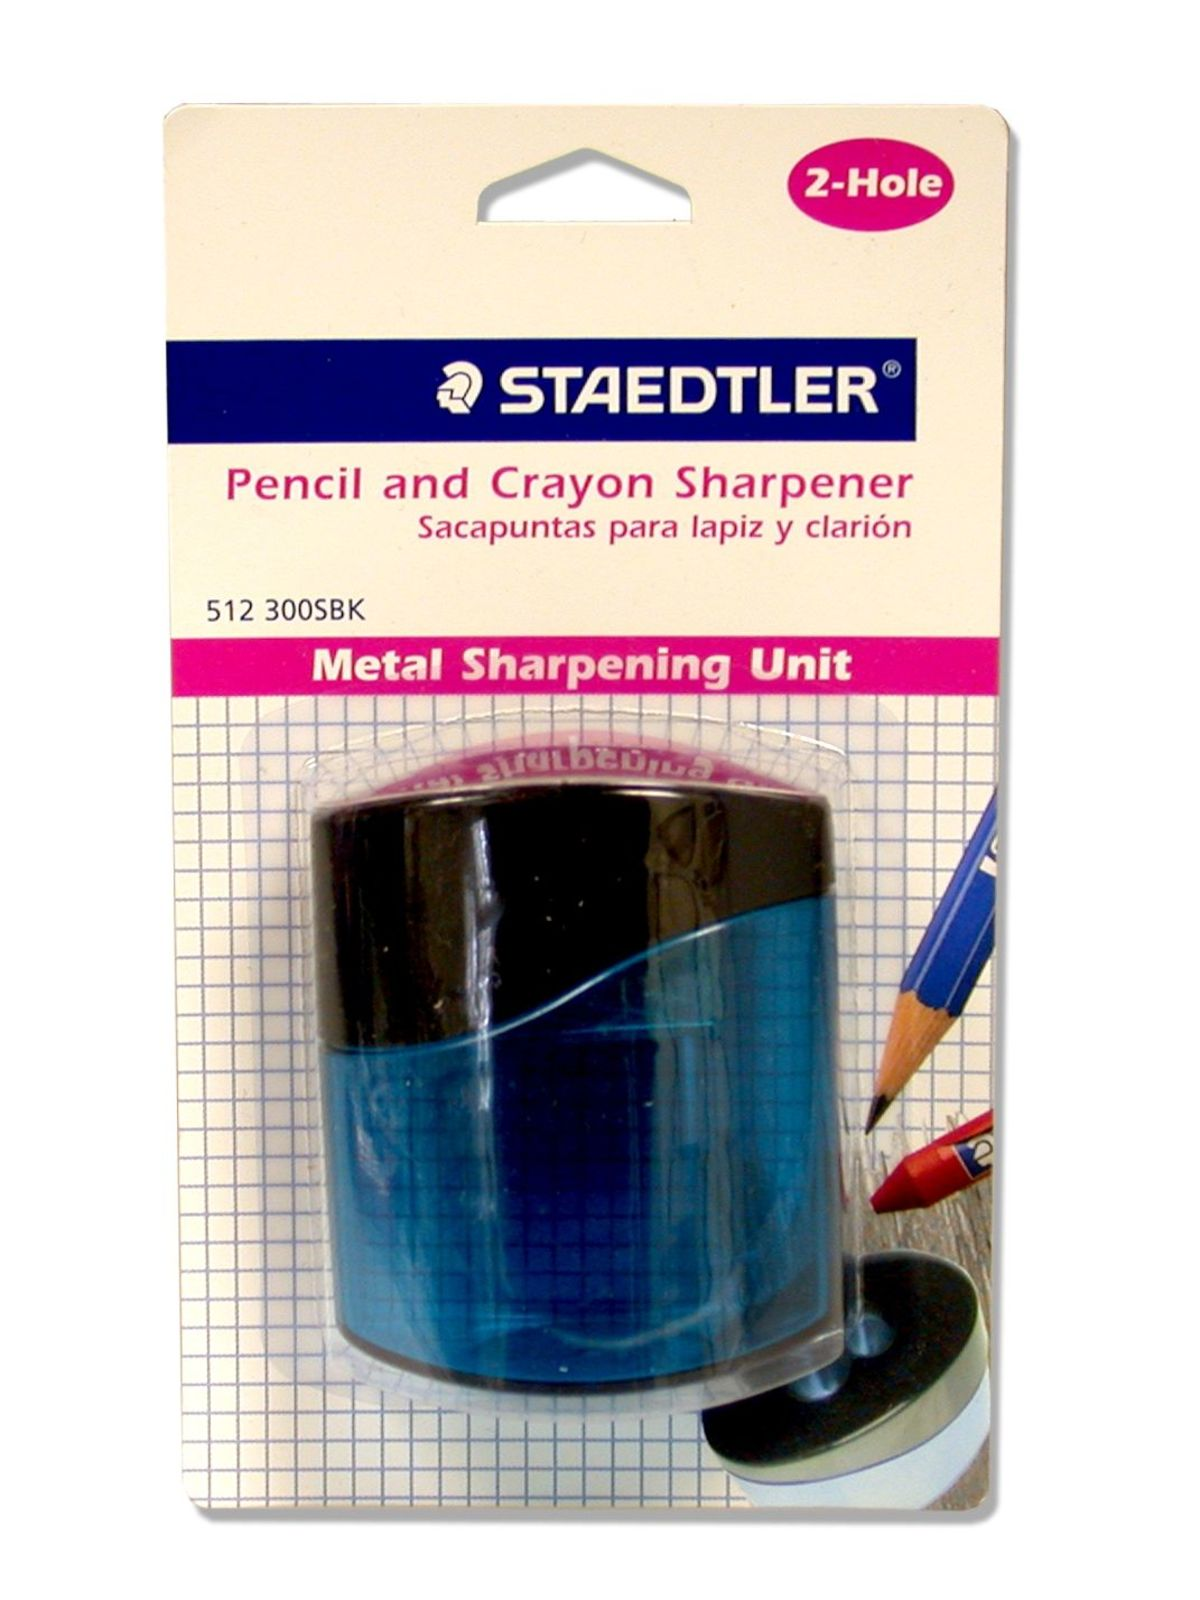 Pencil and Crayon Sharpener